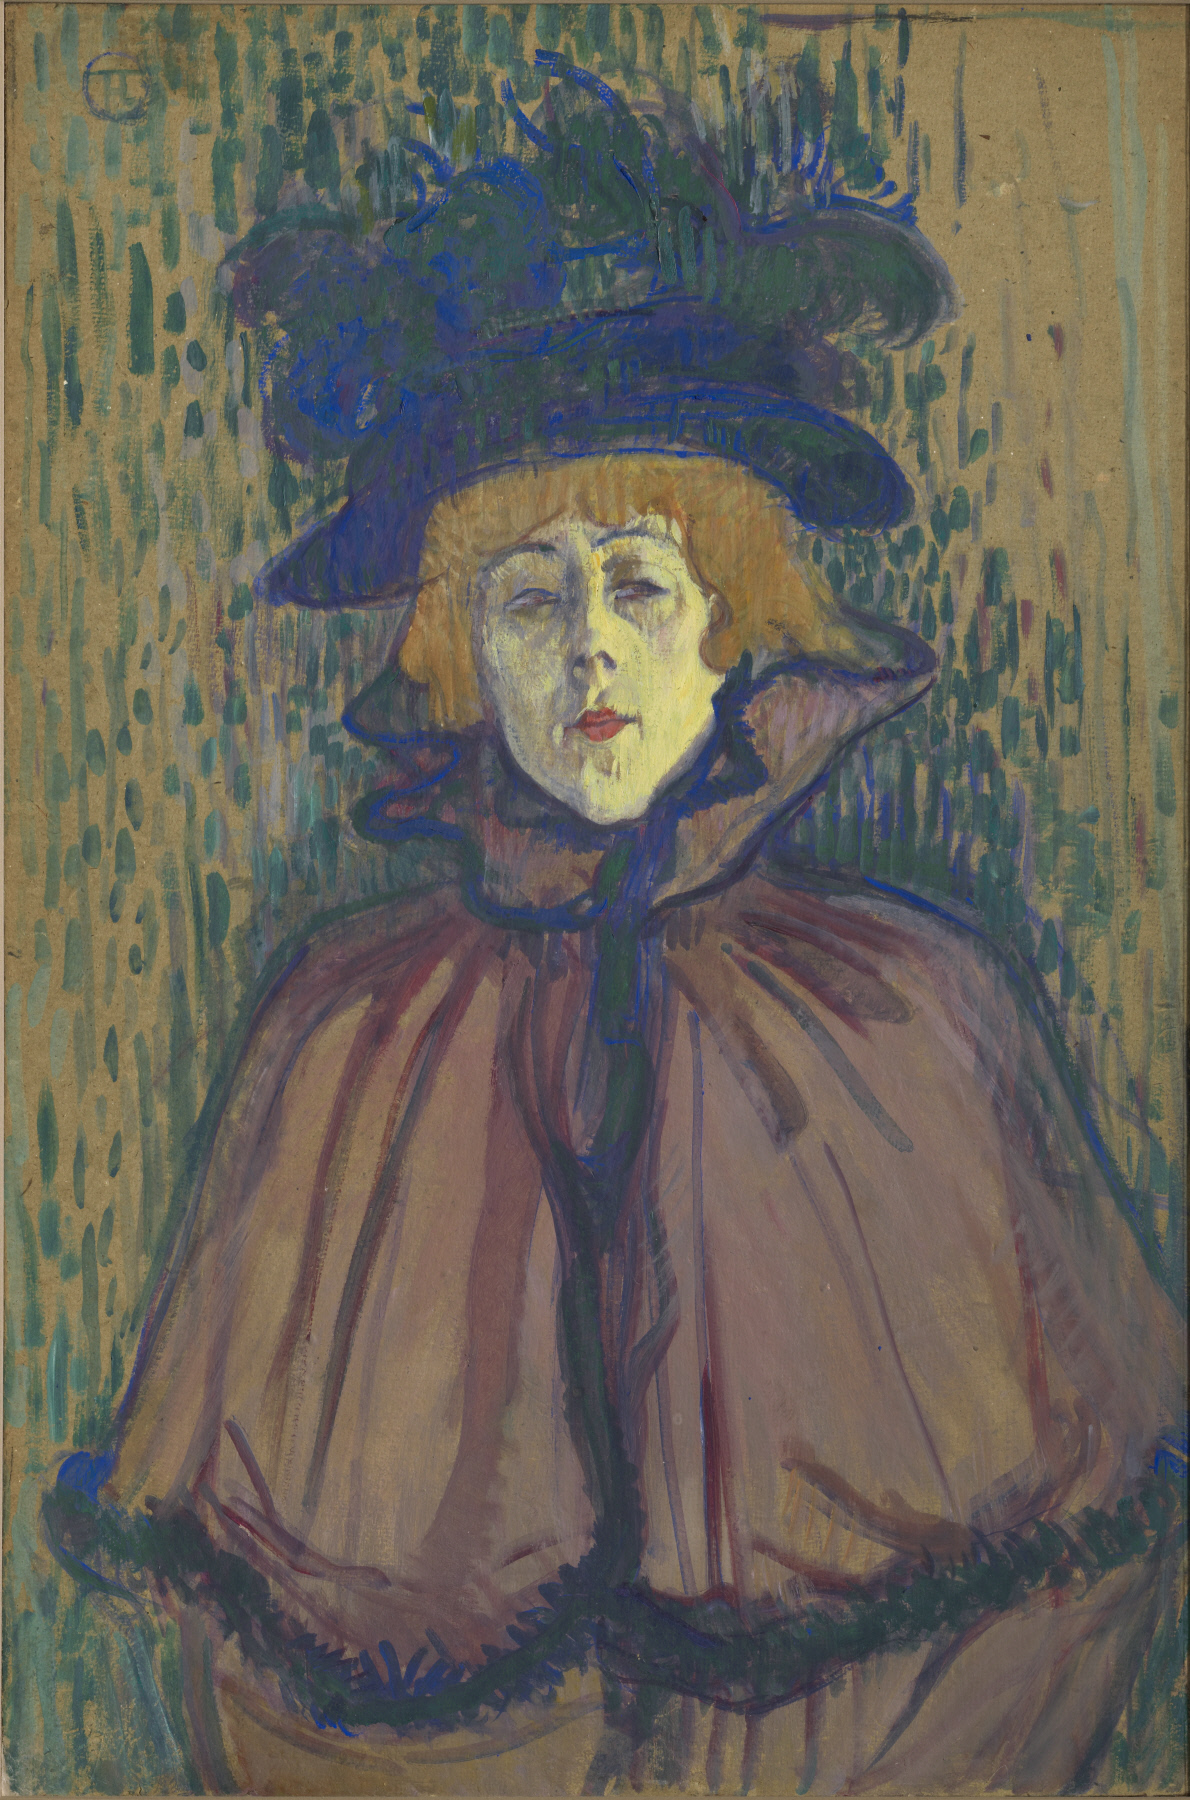 Jane Avril, ca. 1892 by Toulouse-Lautrec